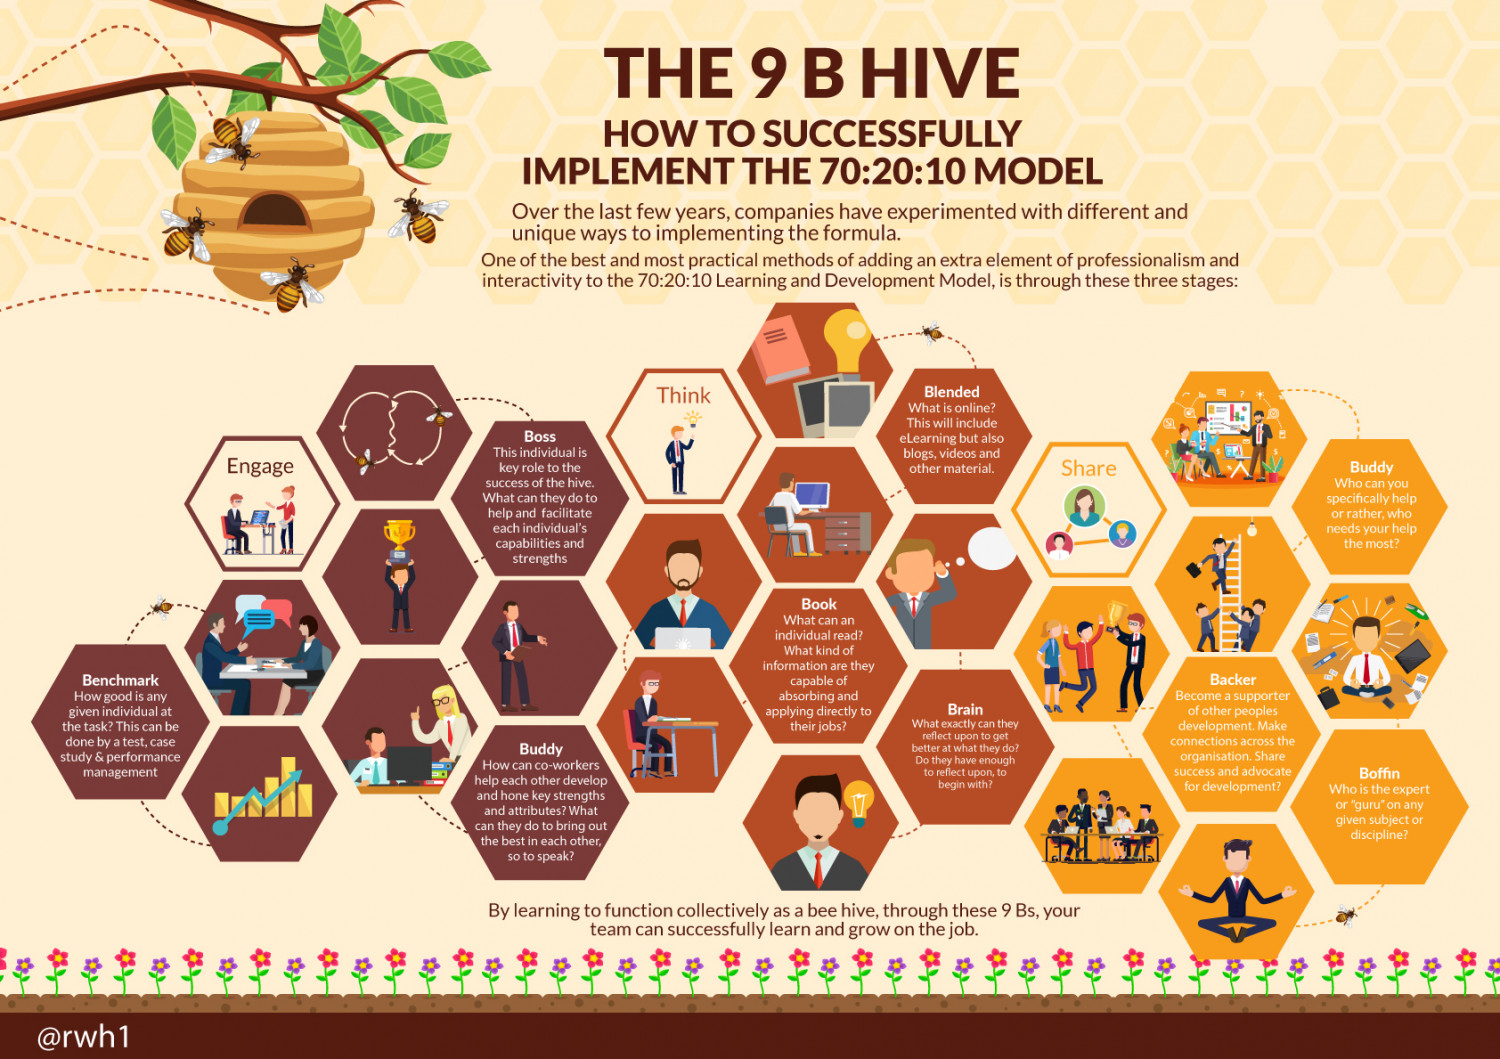 THE 9 B HIVE Infographic